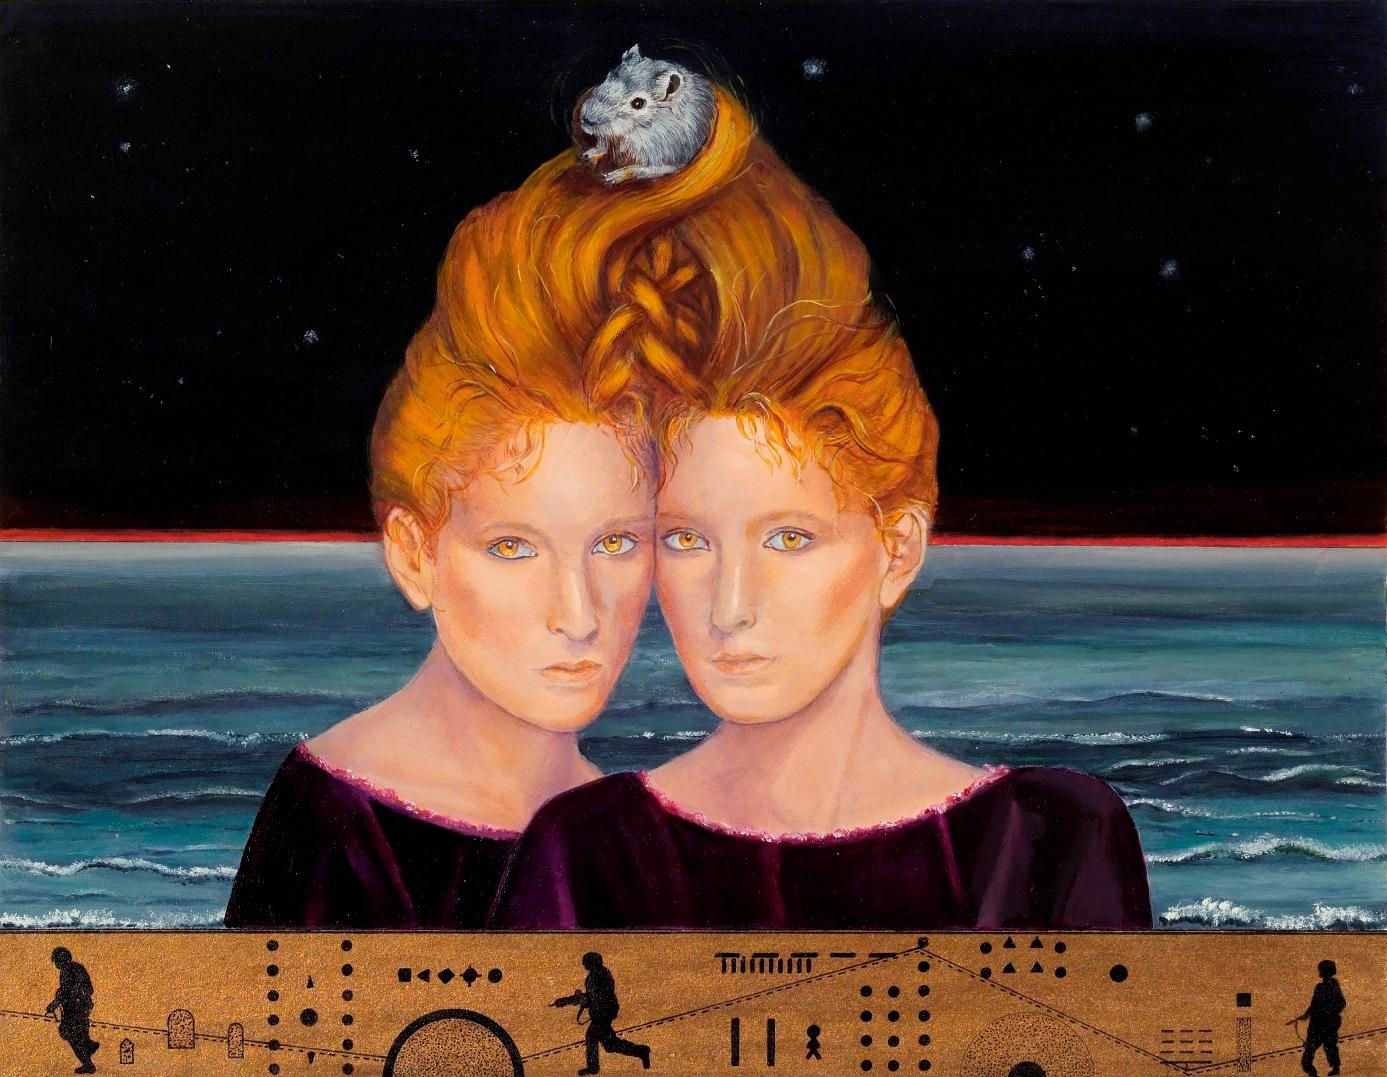 Map of Harmony, Margarida Kendall, 2007, Surrealism, Oil on carboard, Blue